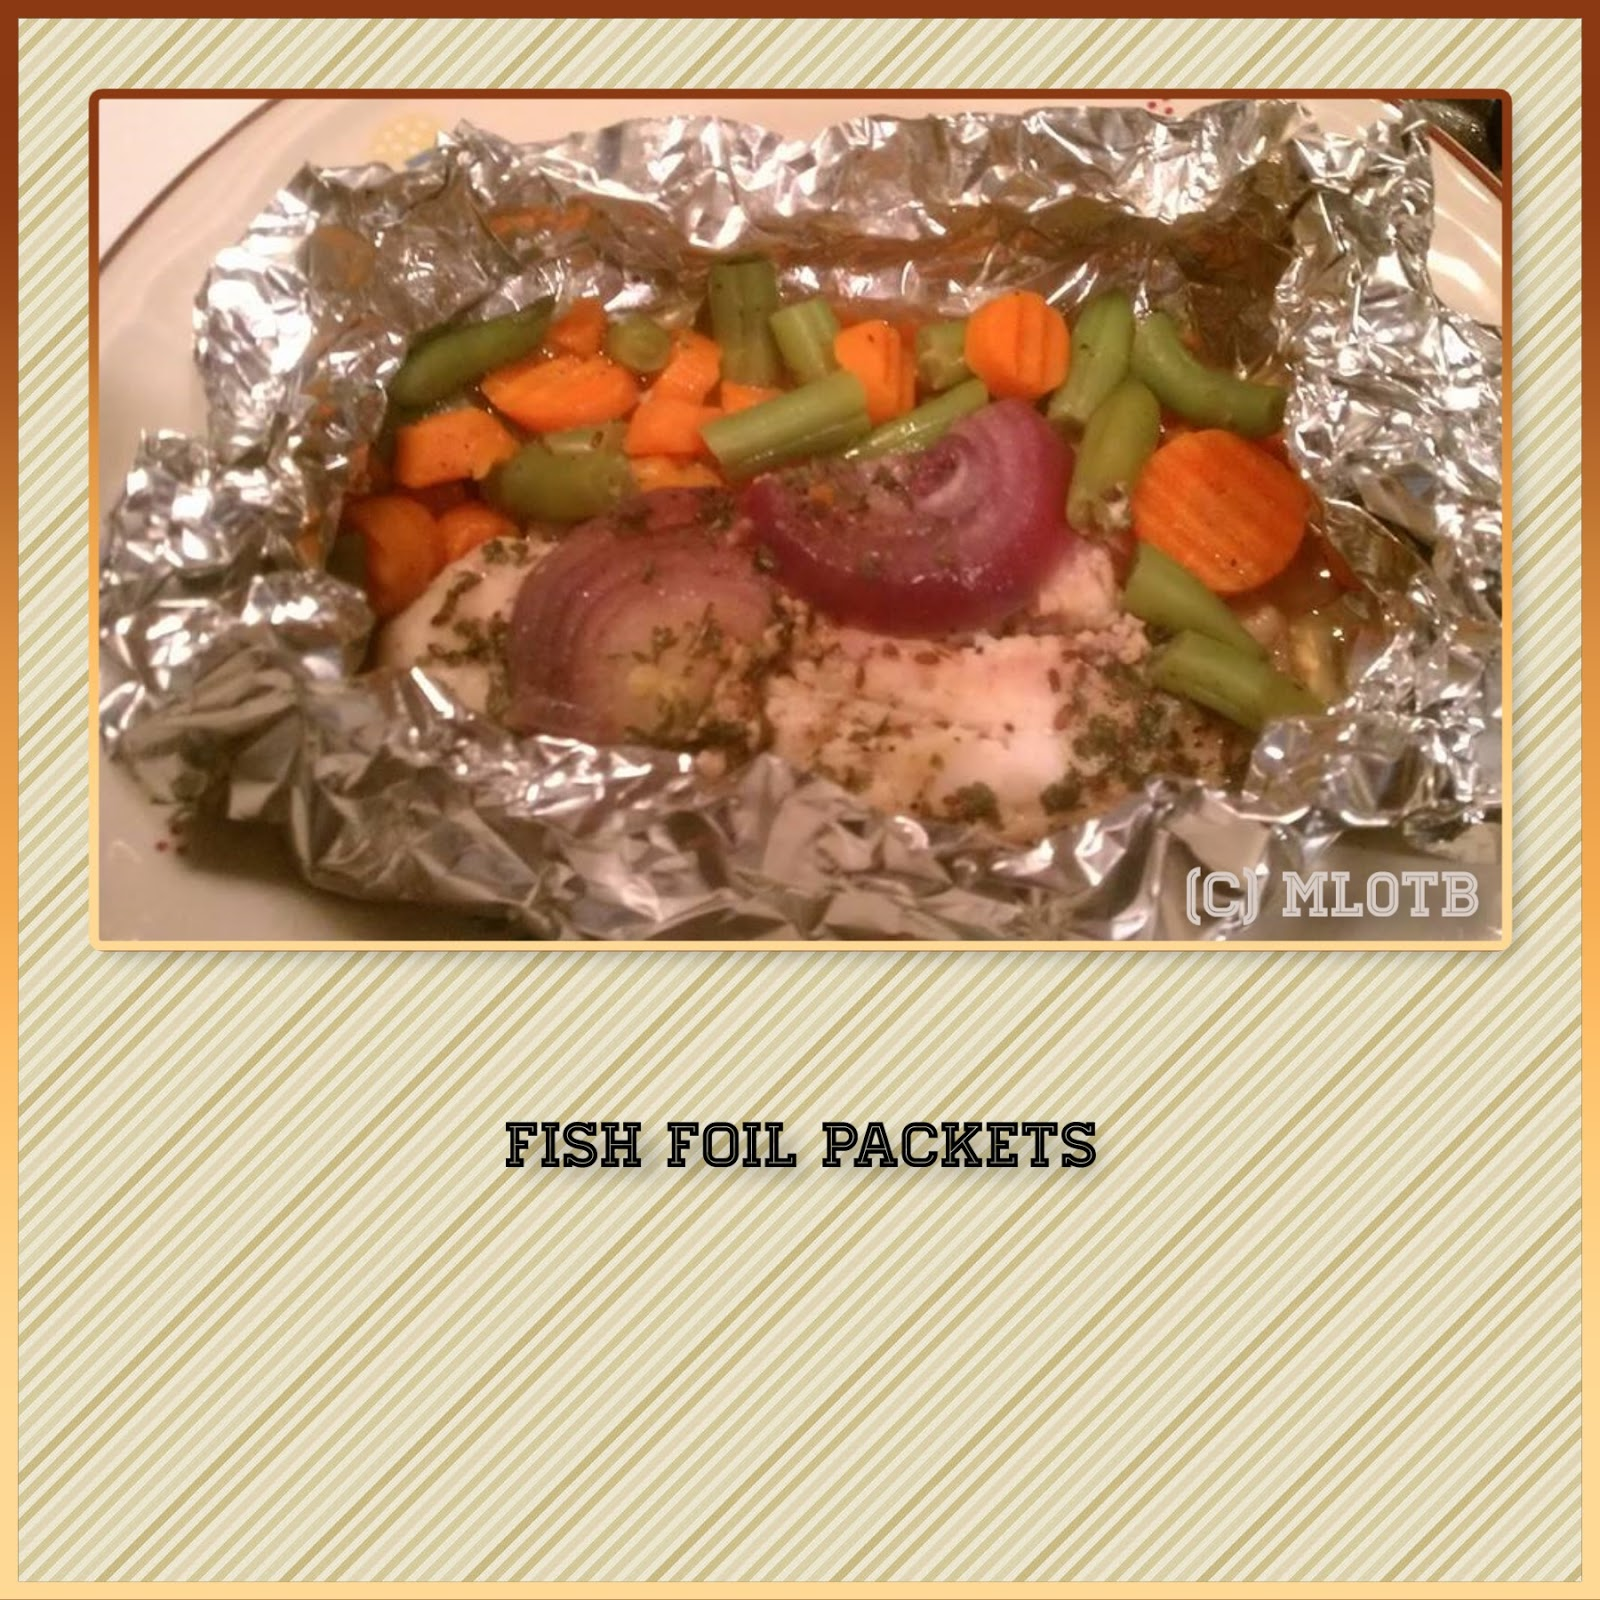 My life 0utside the box february 2017 for Fish foil packets oven